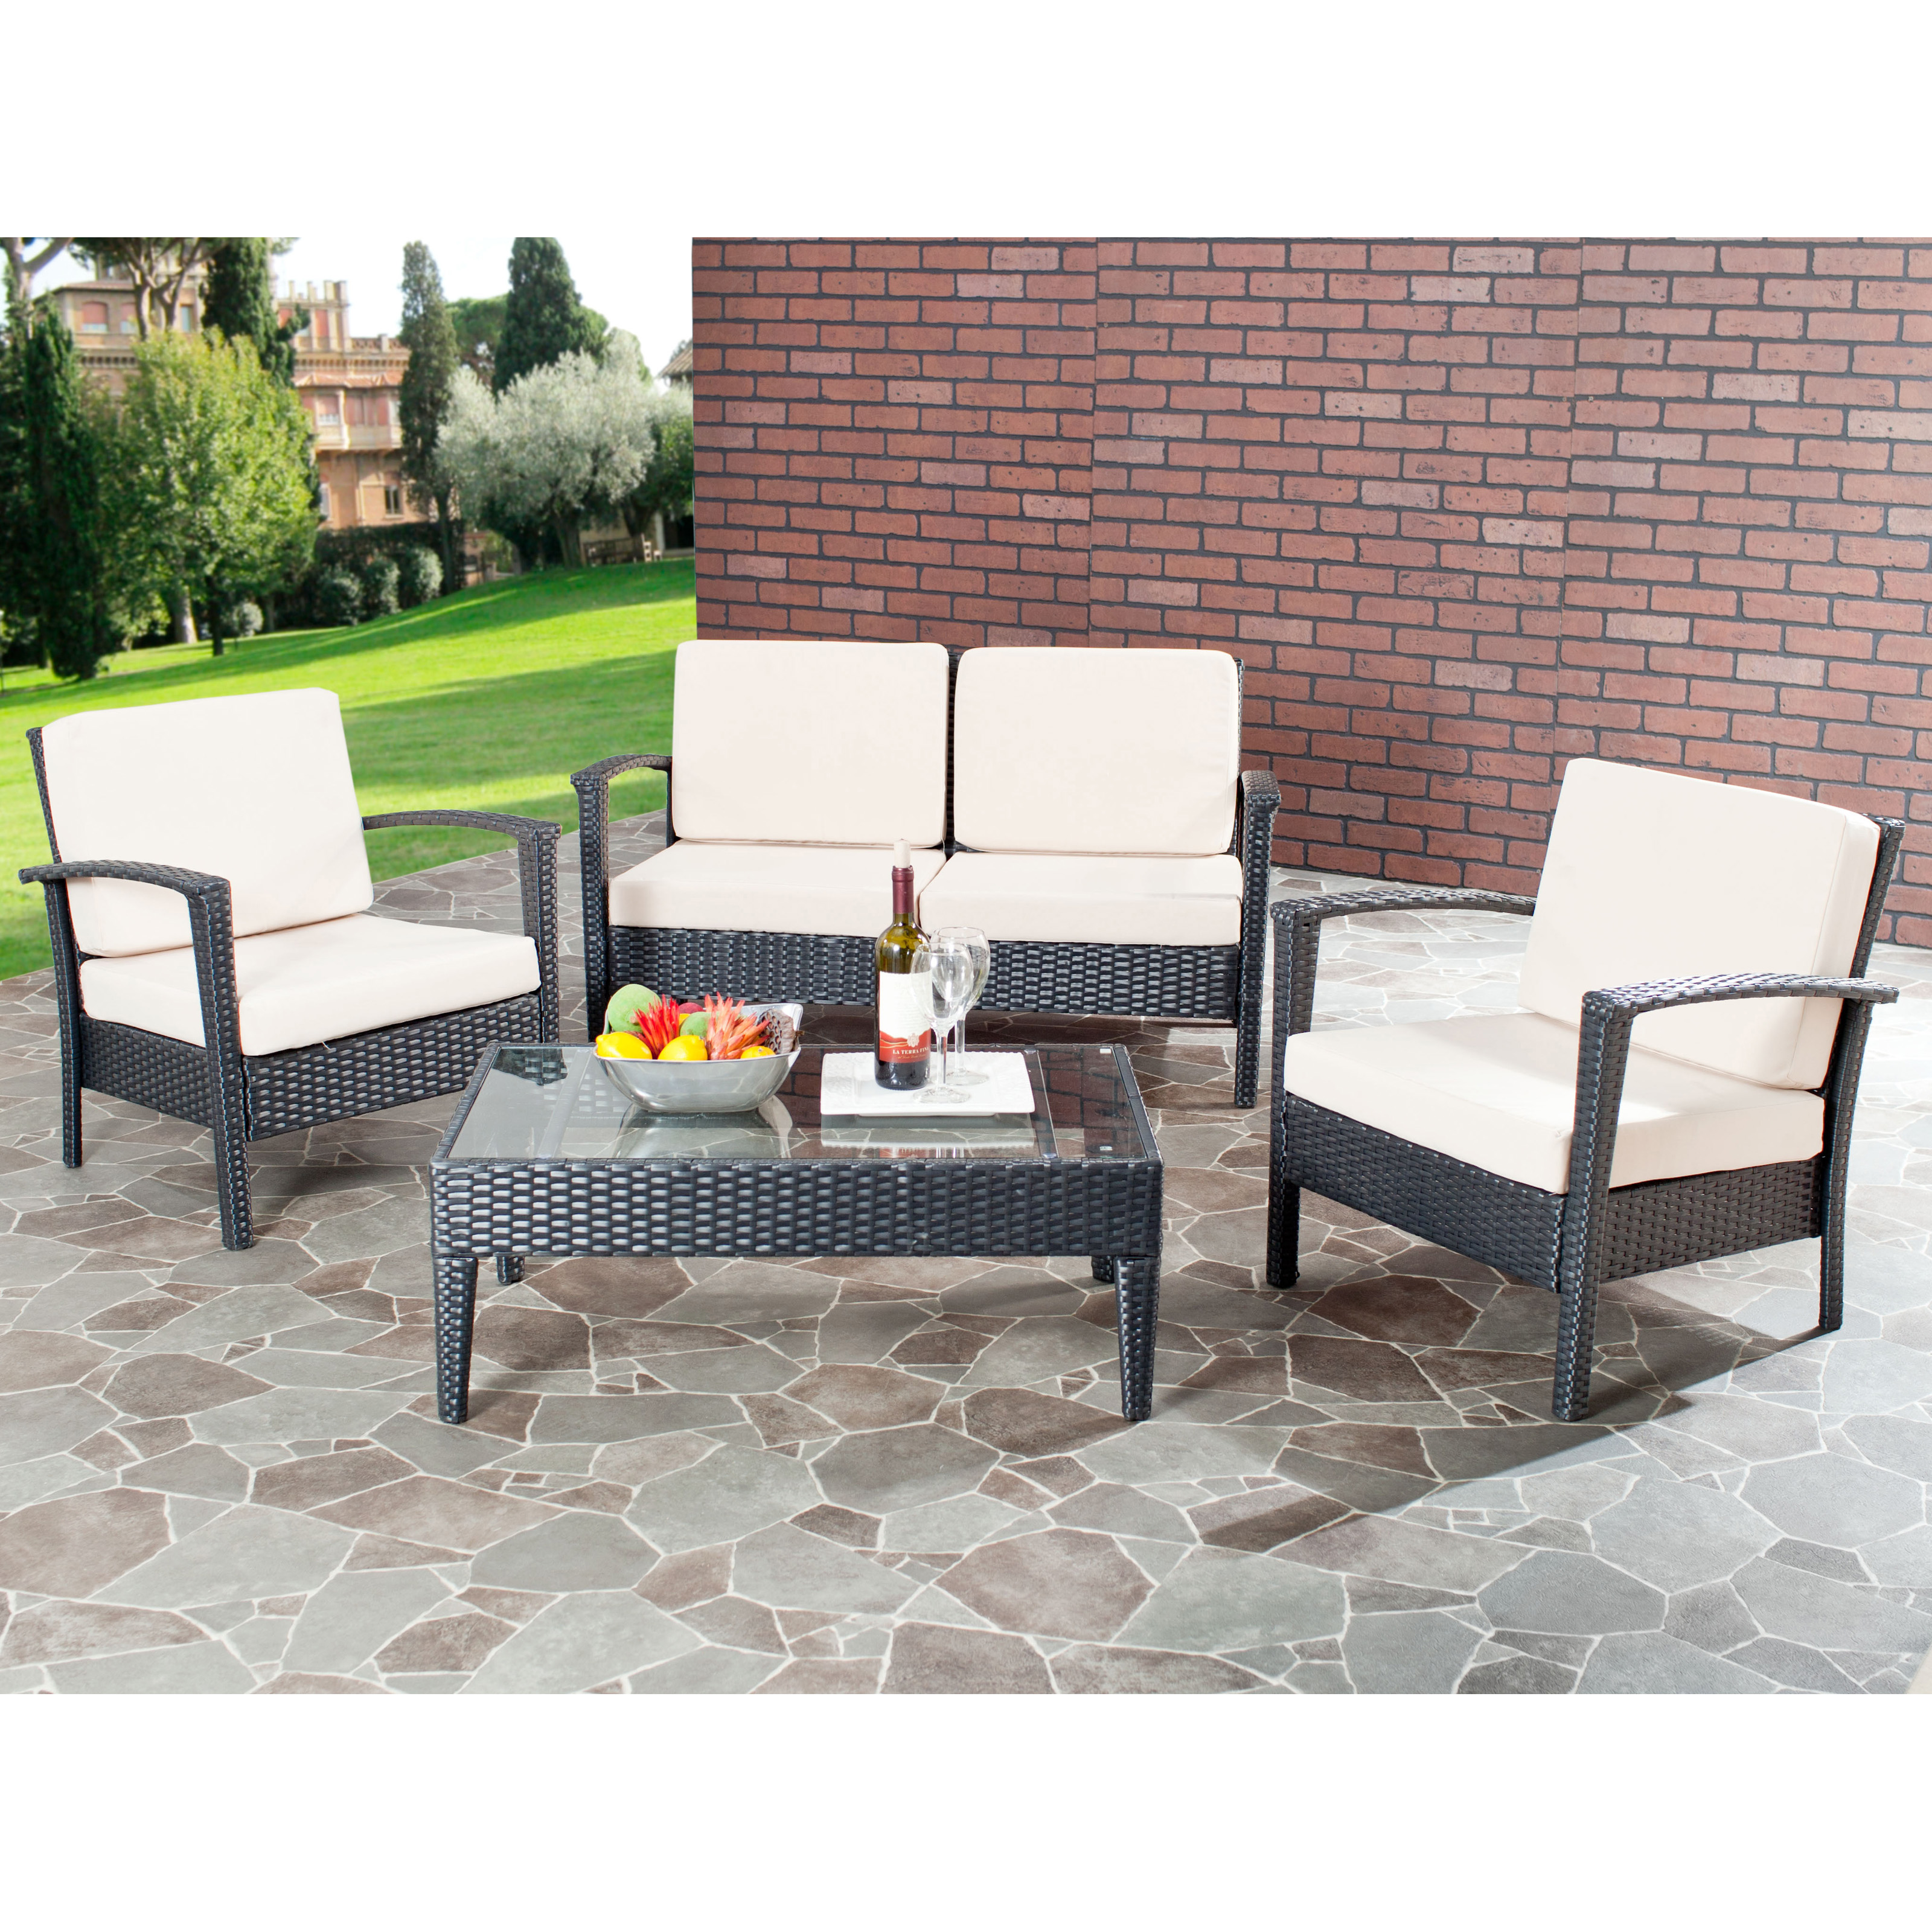 safavieh watson all weather wicker conversation set conversation patio sets at hayneedle. Black Bedroom Furniture Sets. Home Design Ideas